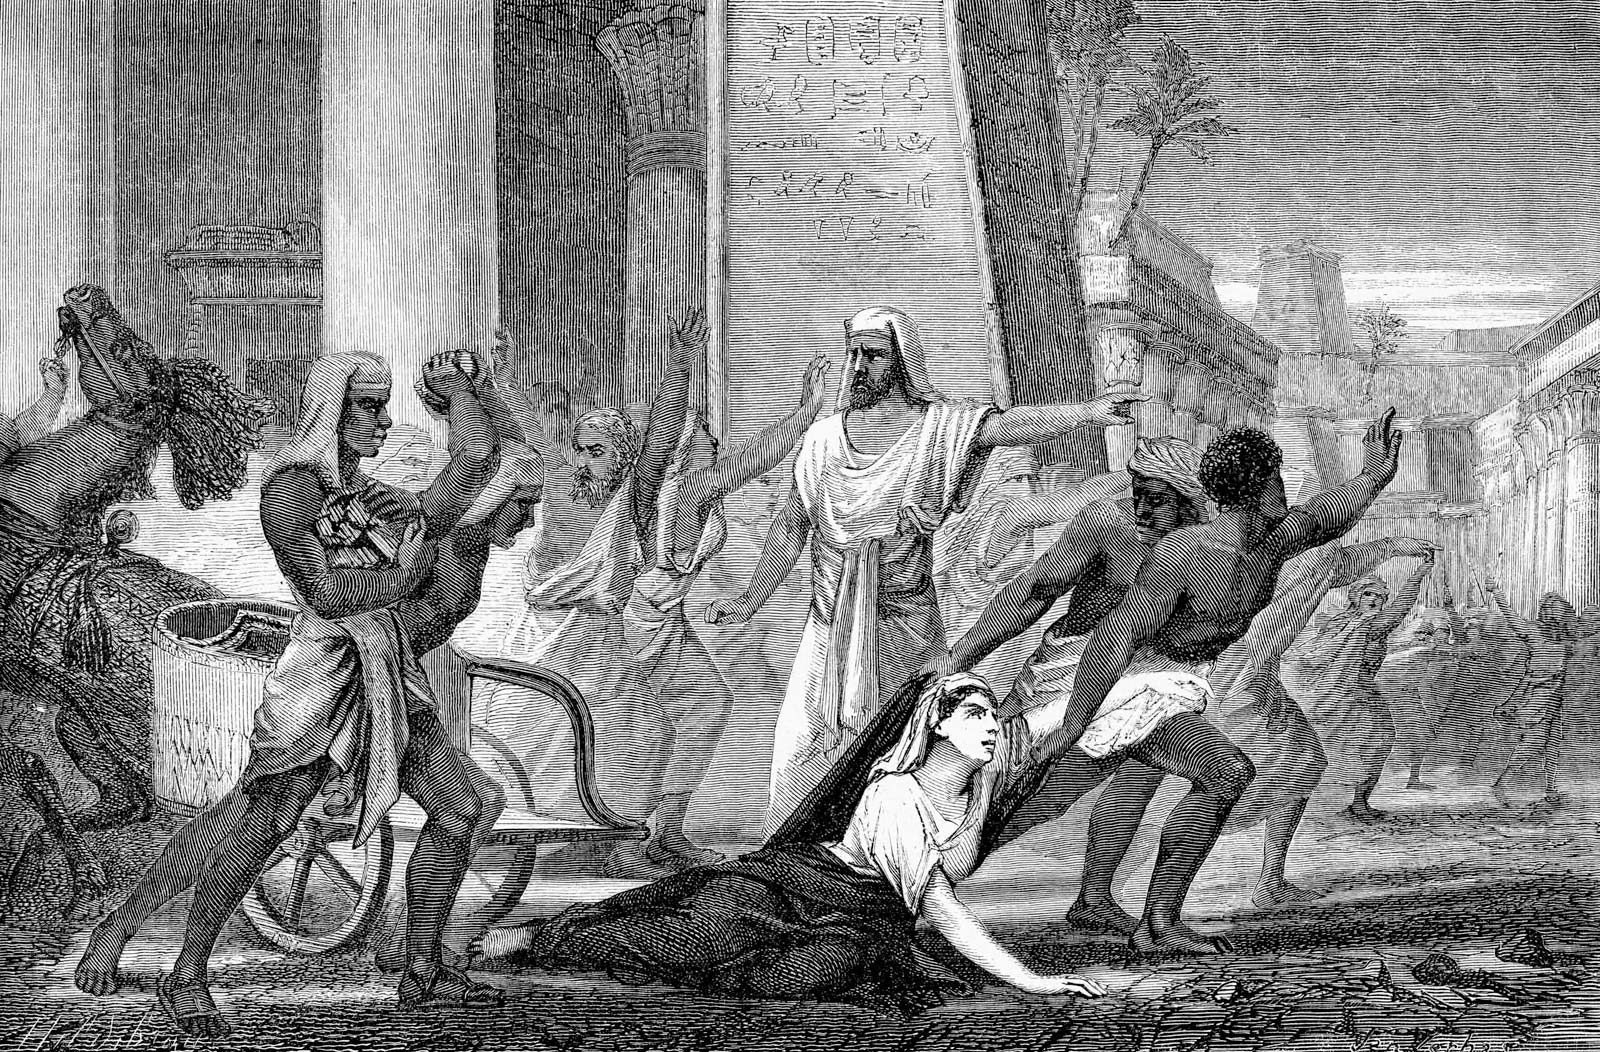 A 19th-century depiction of Hypatia of Alexandria being dragged to her death by the Christian mob. The 'Fall of Rome' and the end of classical antiquity have been used again and again to refocus Europeans' ideas of themselves and their own cultural narratives: here we see Hypatia as a (white) martyr of Classical rationalism falling foul of the irrational forces of (black) medieval barbarism.